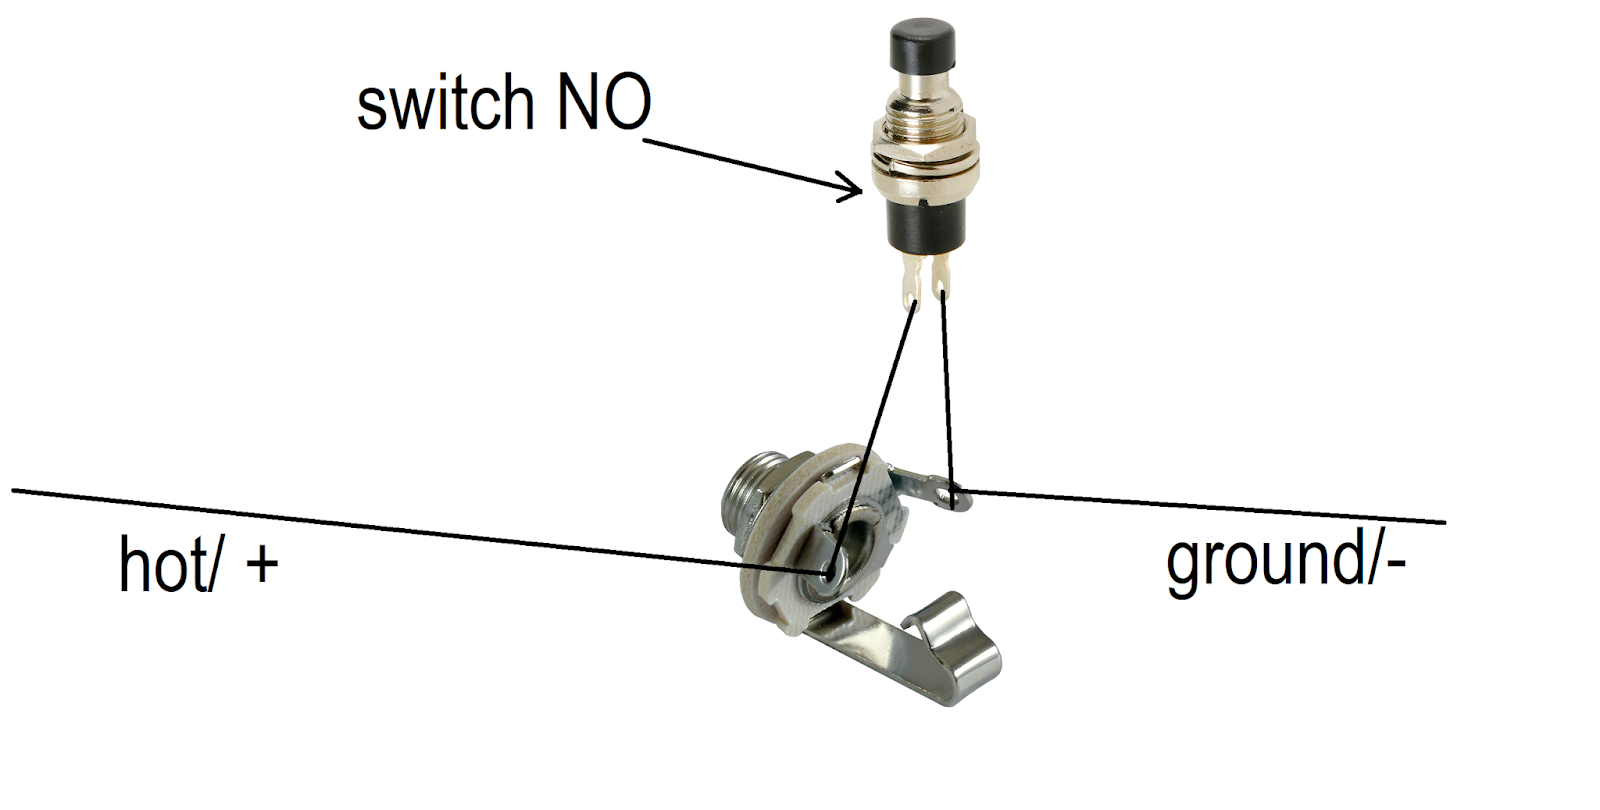 Wiring Kill Switch No Wiring Kill Switch Toggle Sedangkan